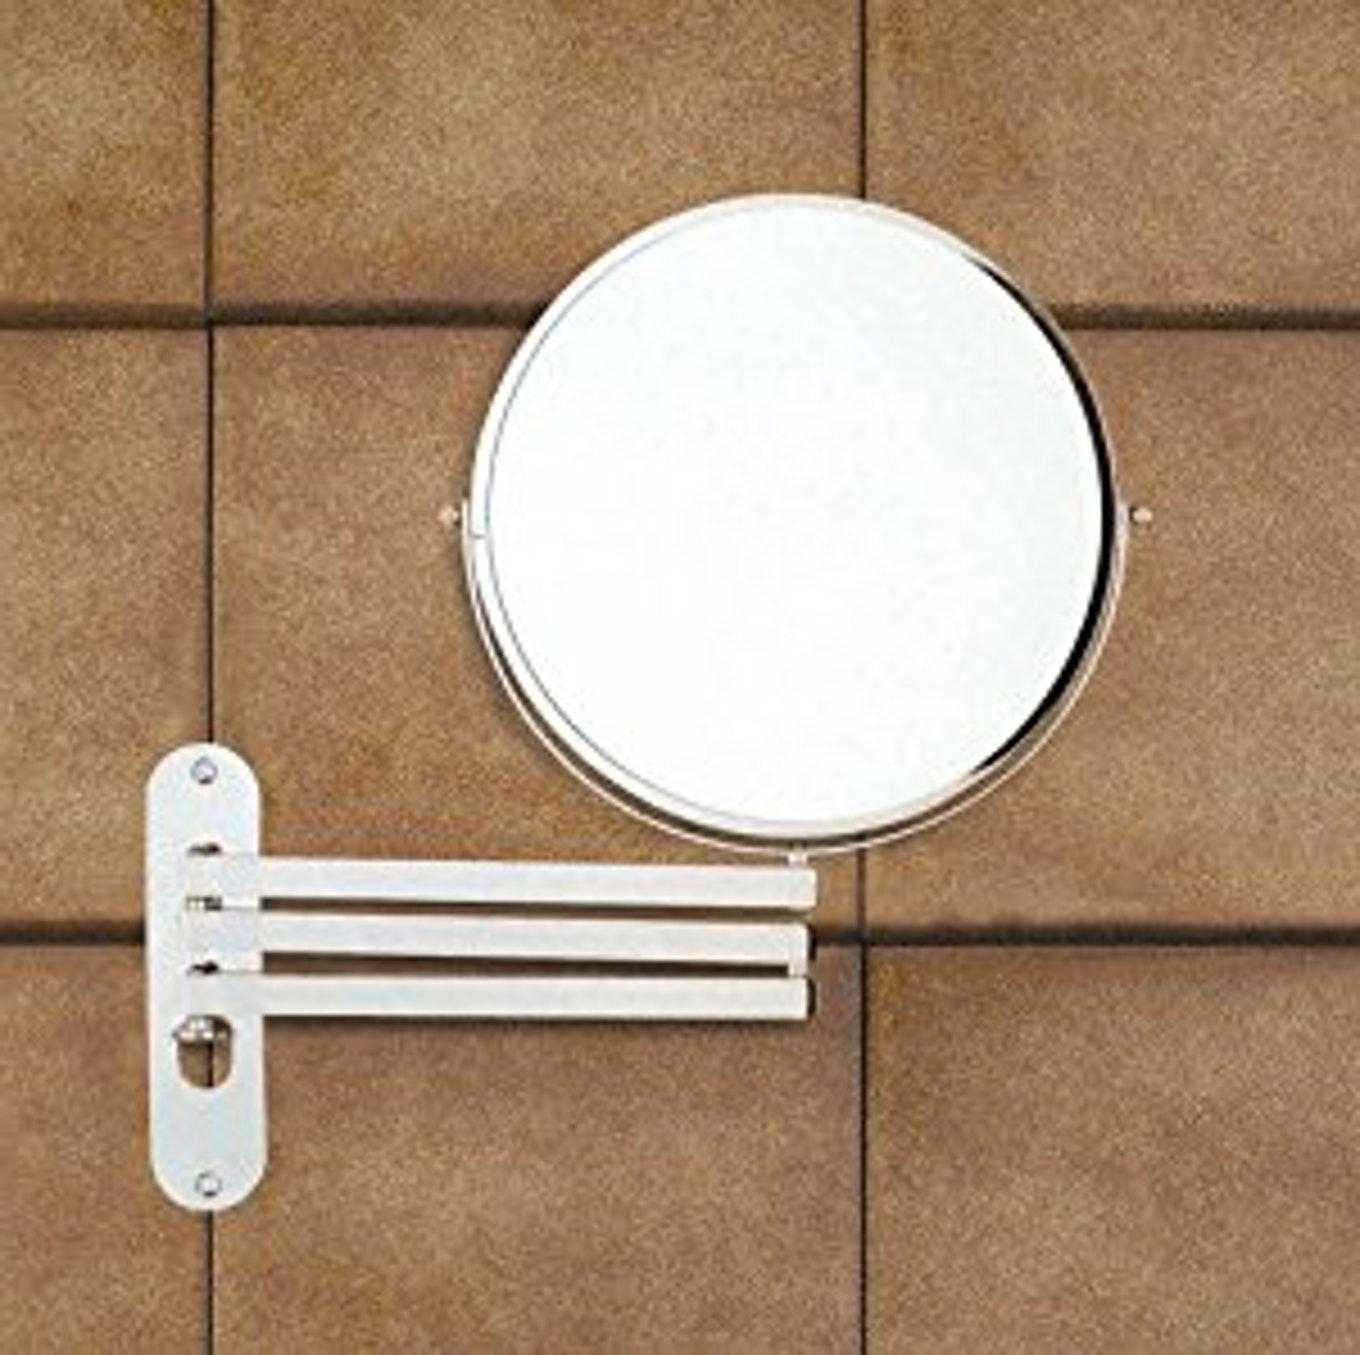 Product Extension Mirrors Wall Mounted Vanity With Long Arms With Bathroom Extension Mirrors (Image 20 of 20)